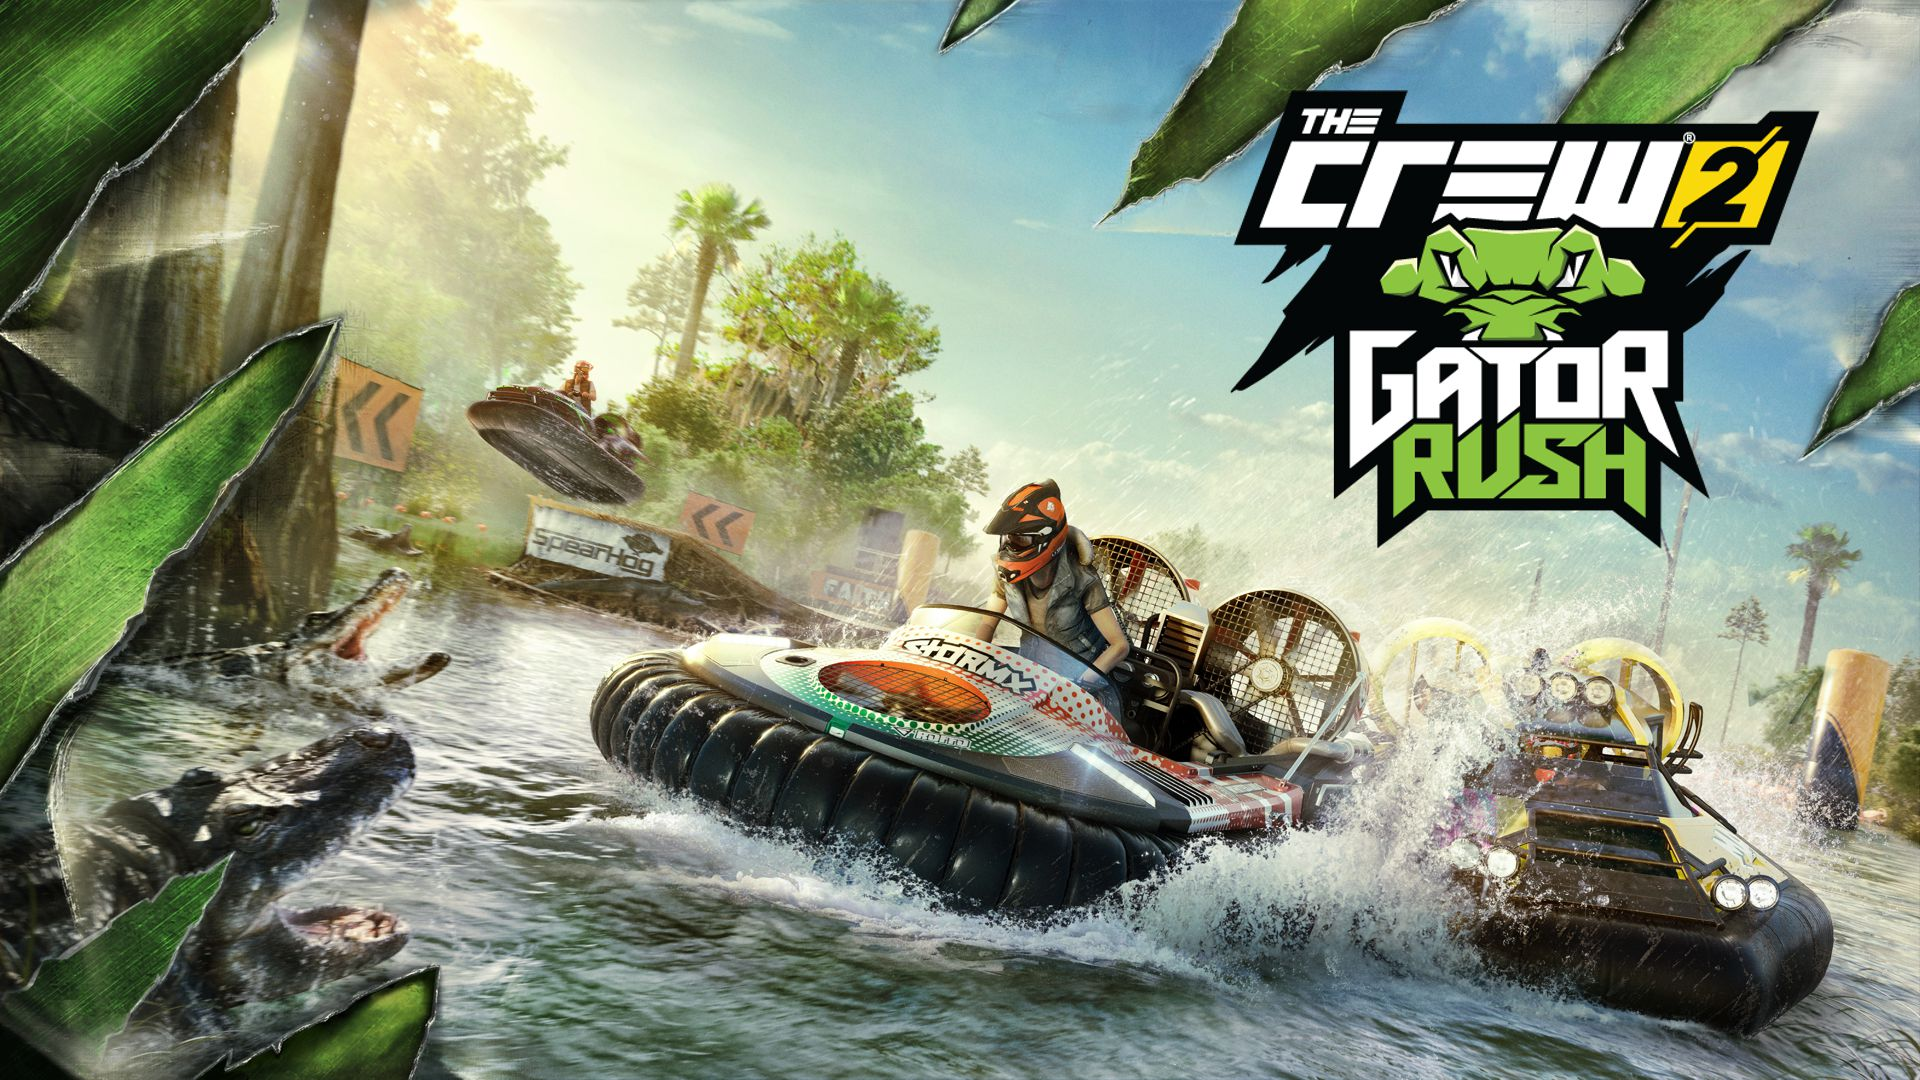 The Crew 2 Gator Rush Principal